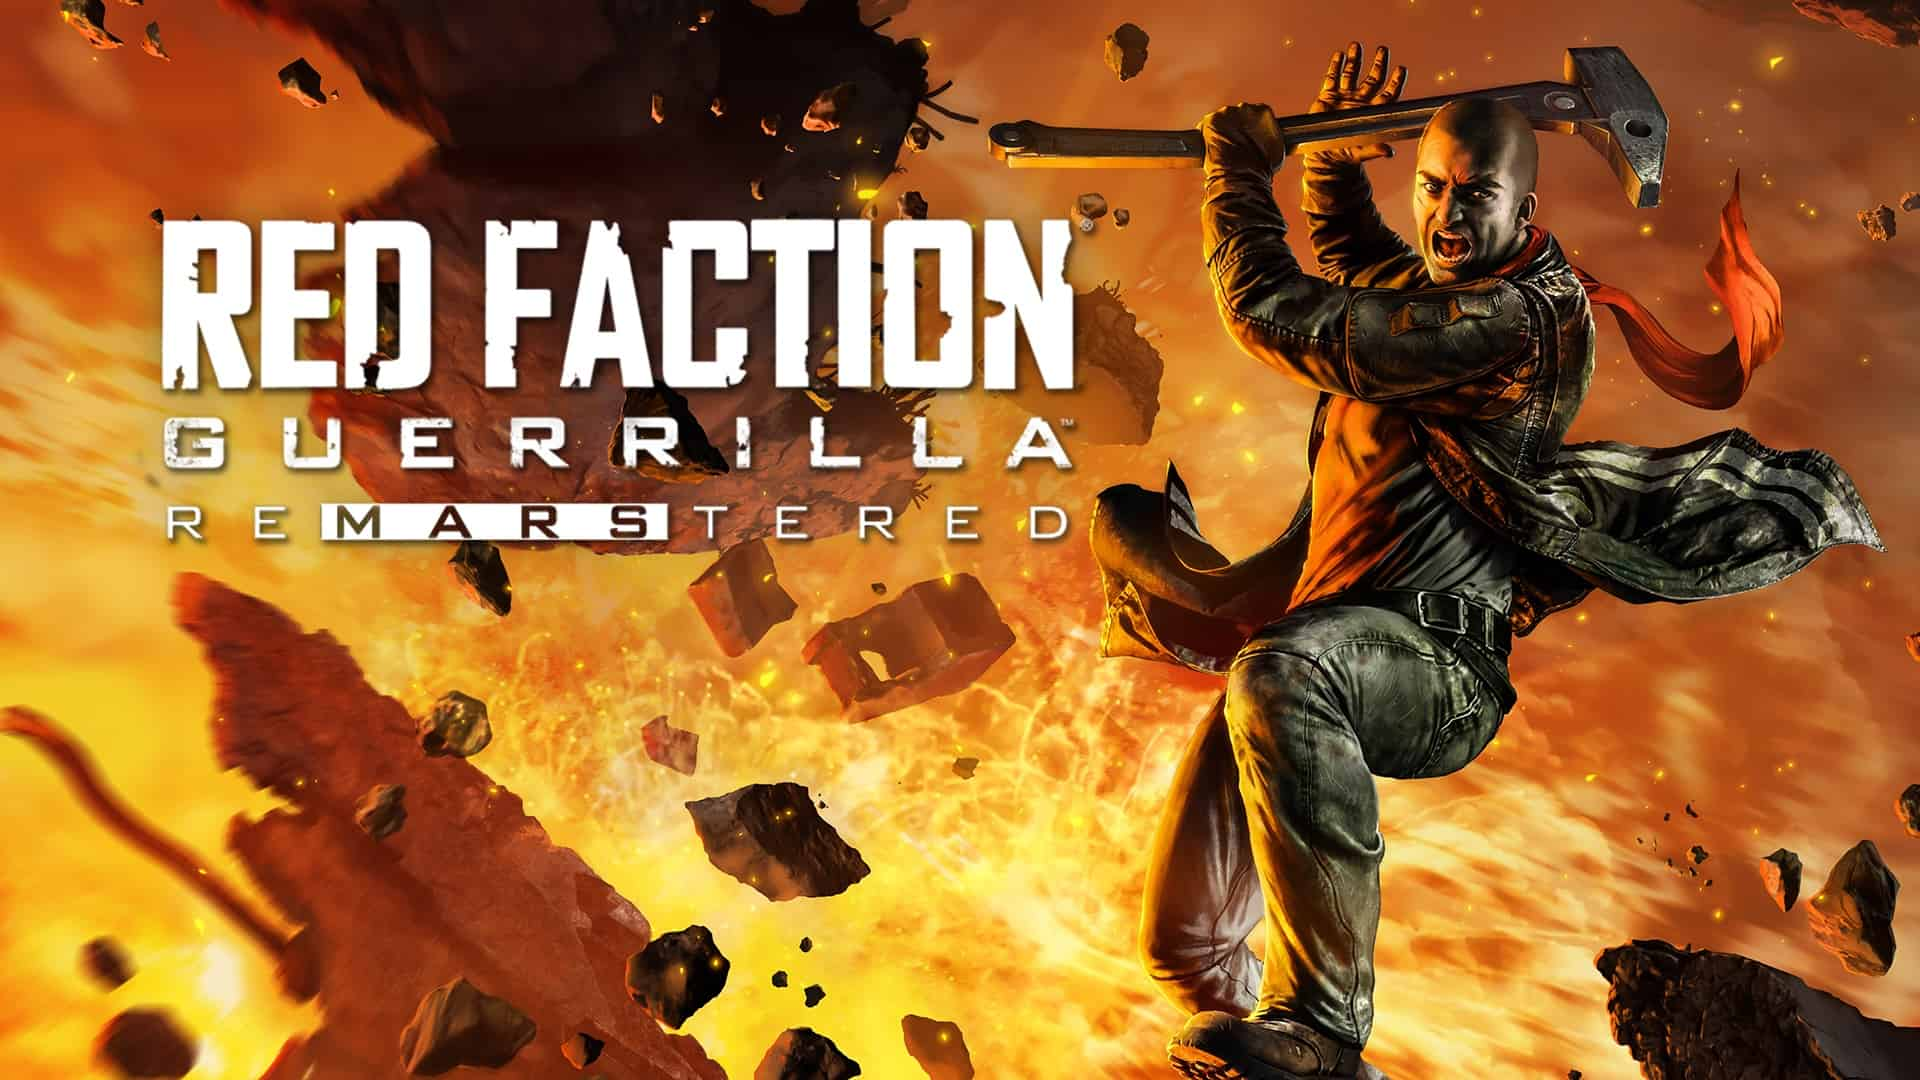 Red Faction Guerrilla Re-Mars-tered Out Now On Nintendo Switch